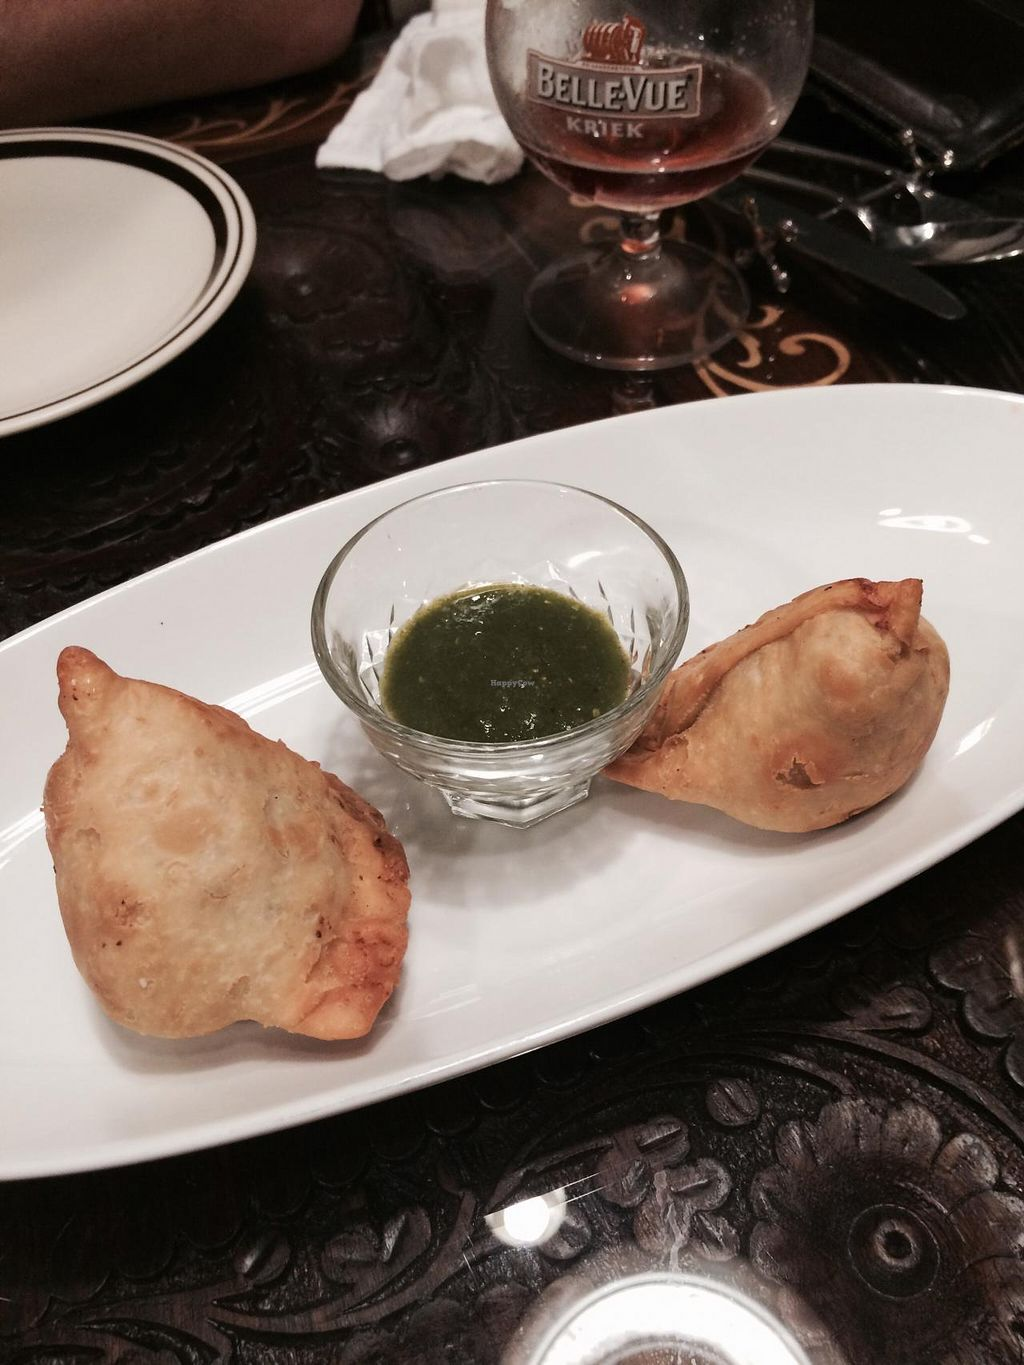 """Photo of Annam Restaurant  by <a href=""""/members/profile/Kristy01"""">Kristy01</a> <br/>Samosas are a bit pricey but taste amazing <br/> April 26, 2015  - <a href='/contact/abuse/image/48538/100411'>Report</a>"""